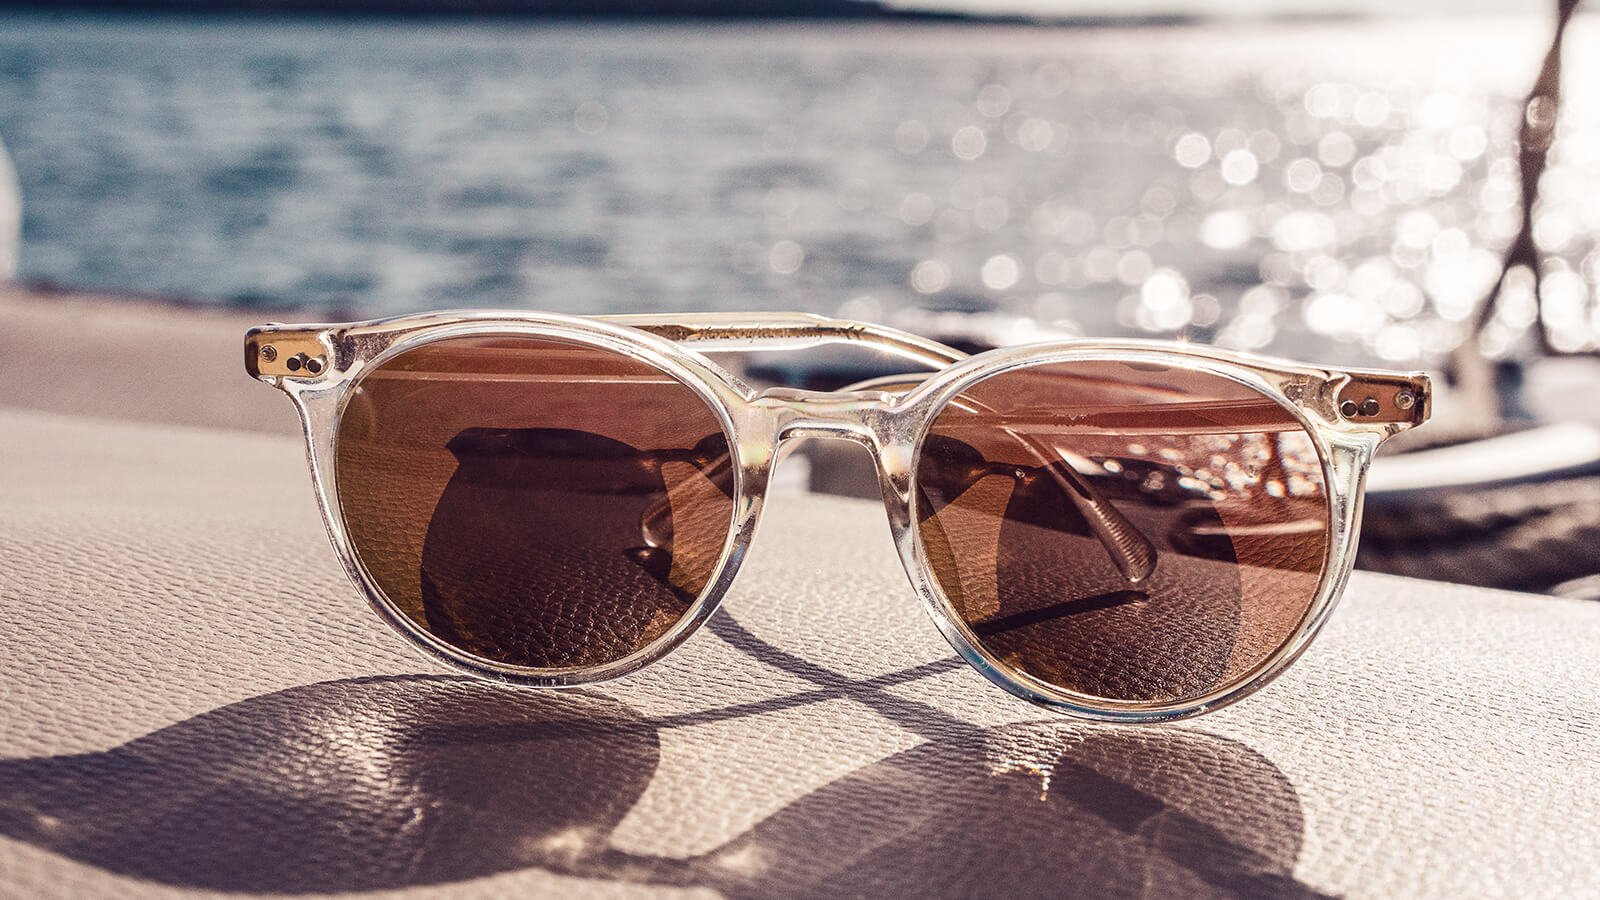 You only need UV 400 sunglasses when you are out.